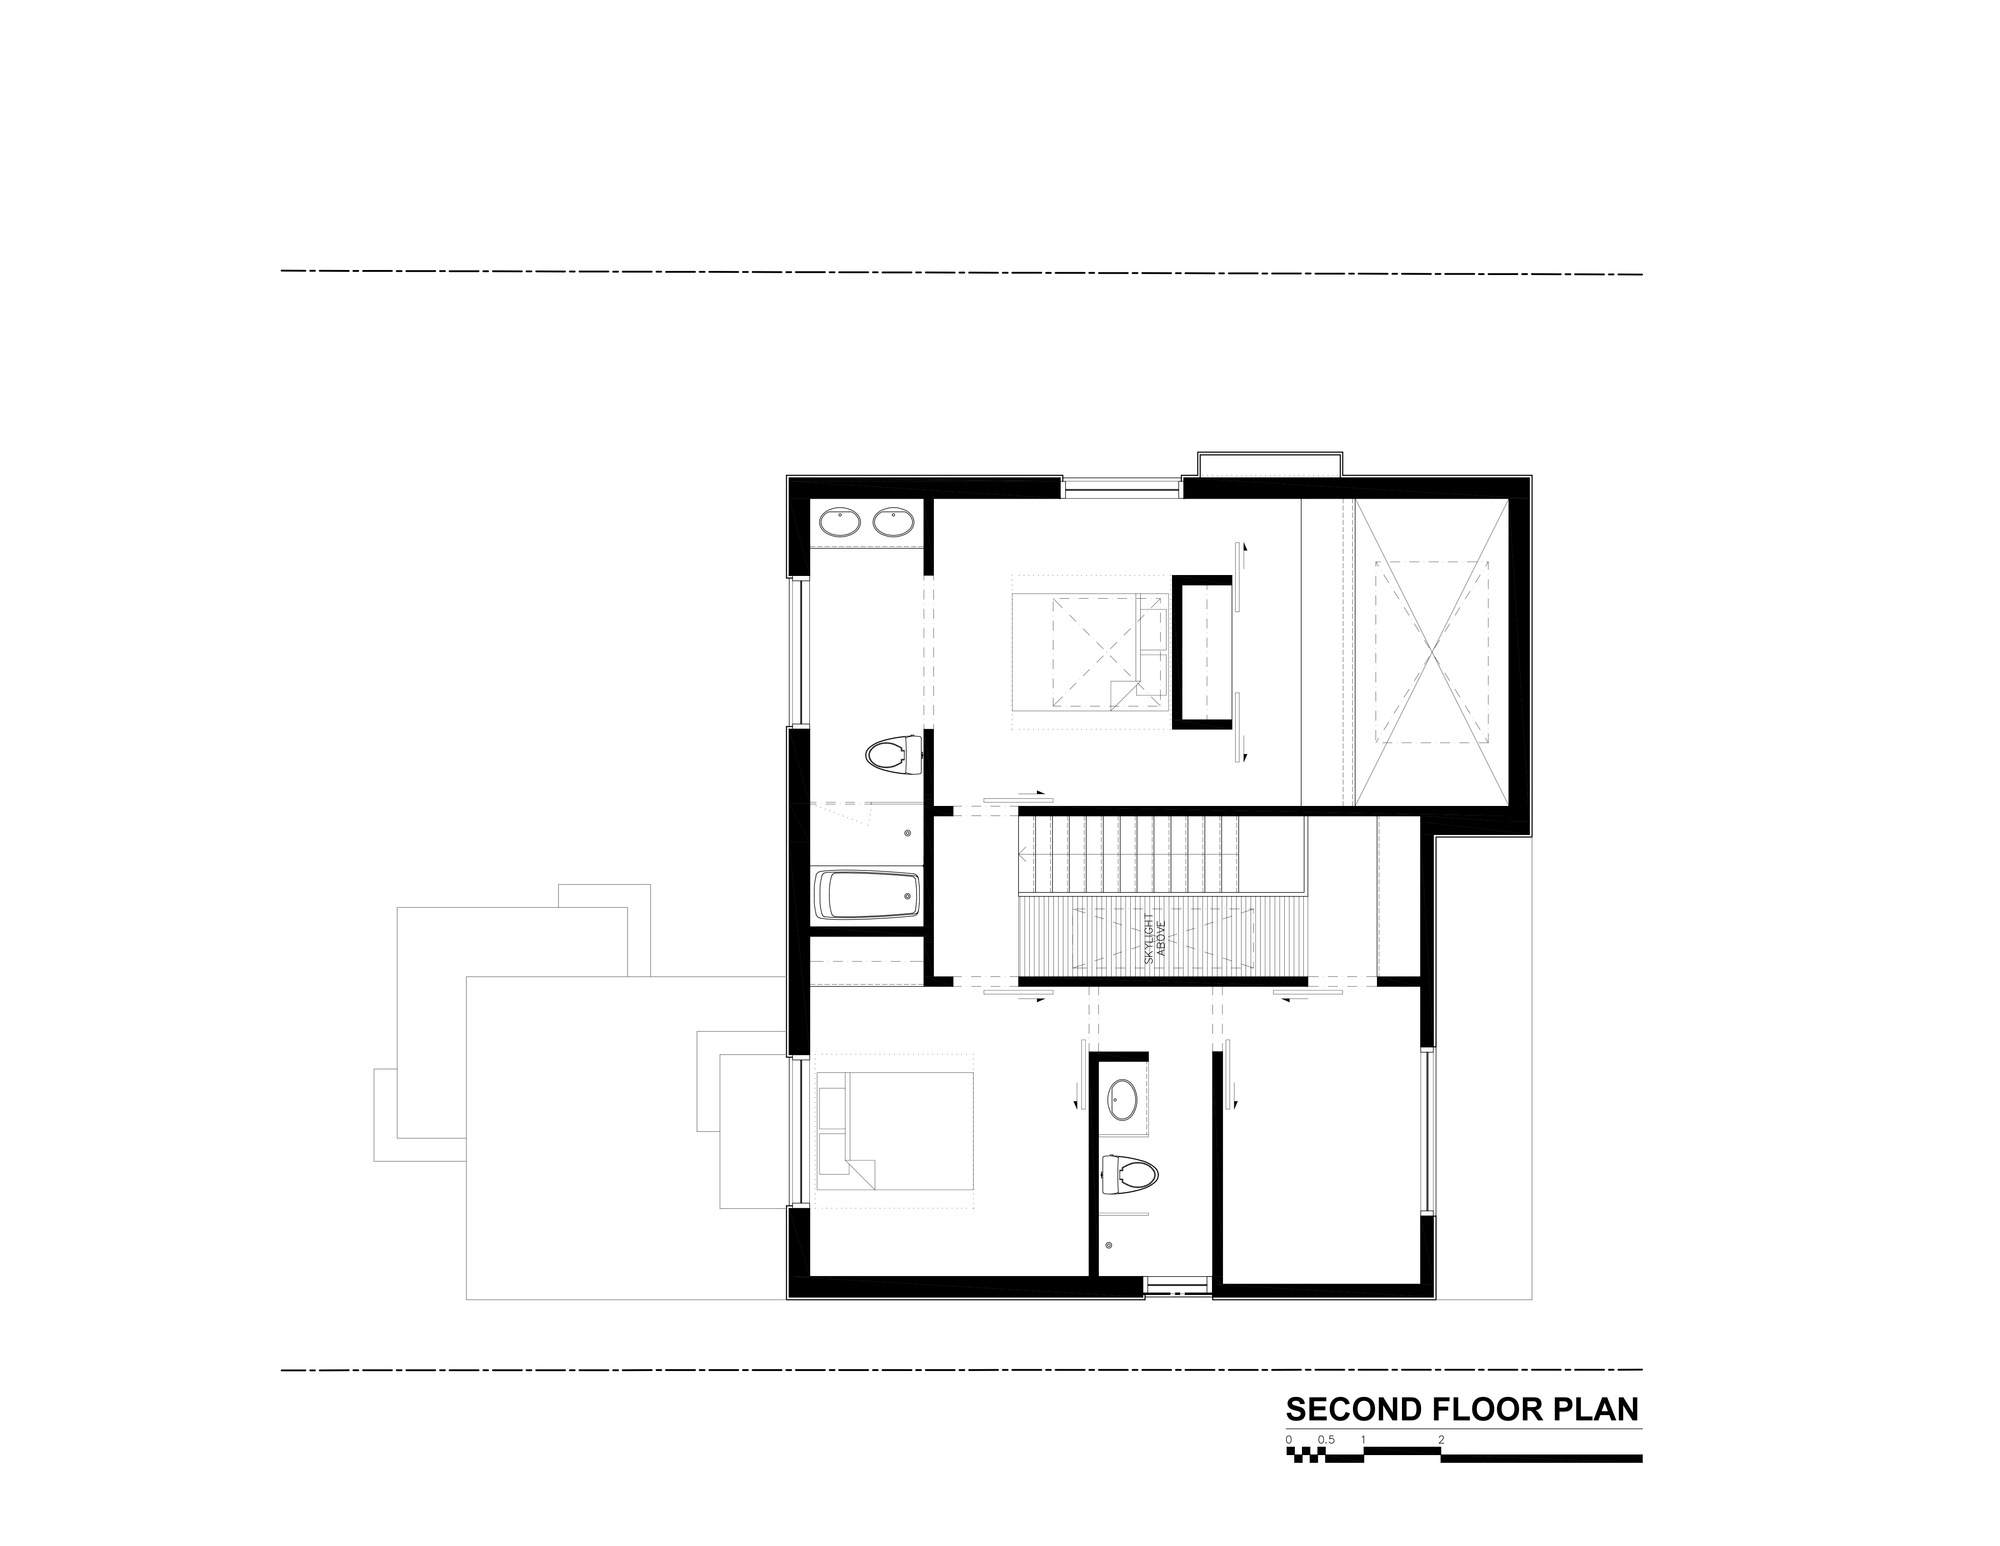 Second Floor Floor Plans marshfield cape cod home Zoom Image View Original Size